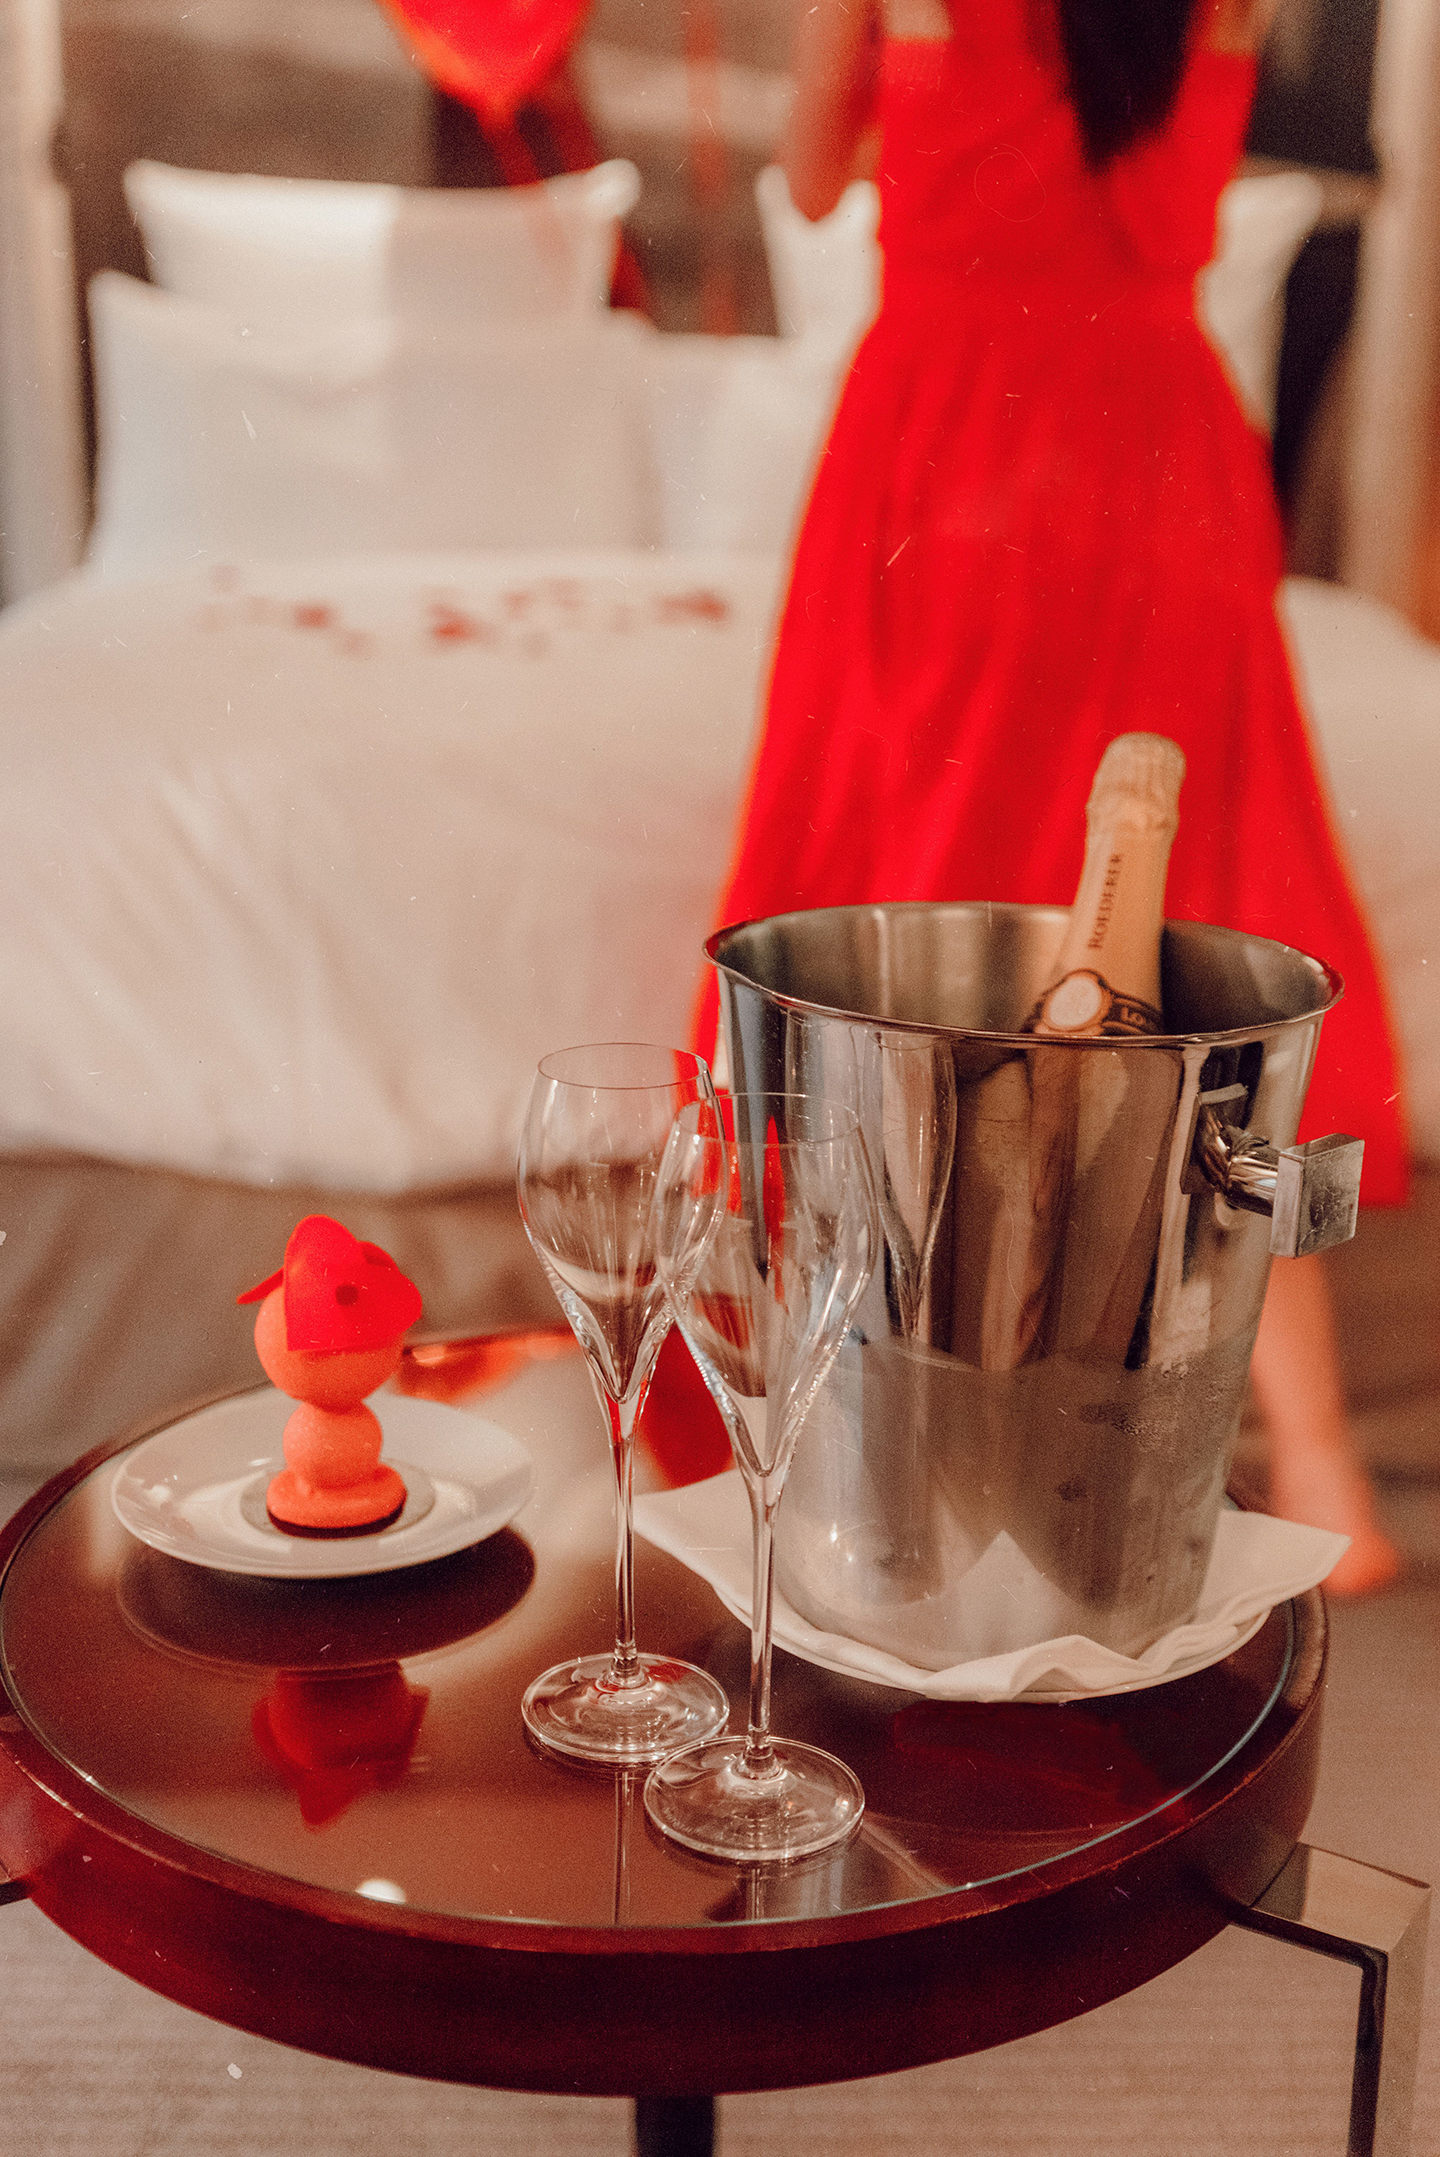 Blog-Mode-And-The-City-Lifestyle-Cinq-Petites-Choses-247-mandarin-oriental-parisian-valentine copie